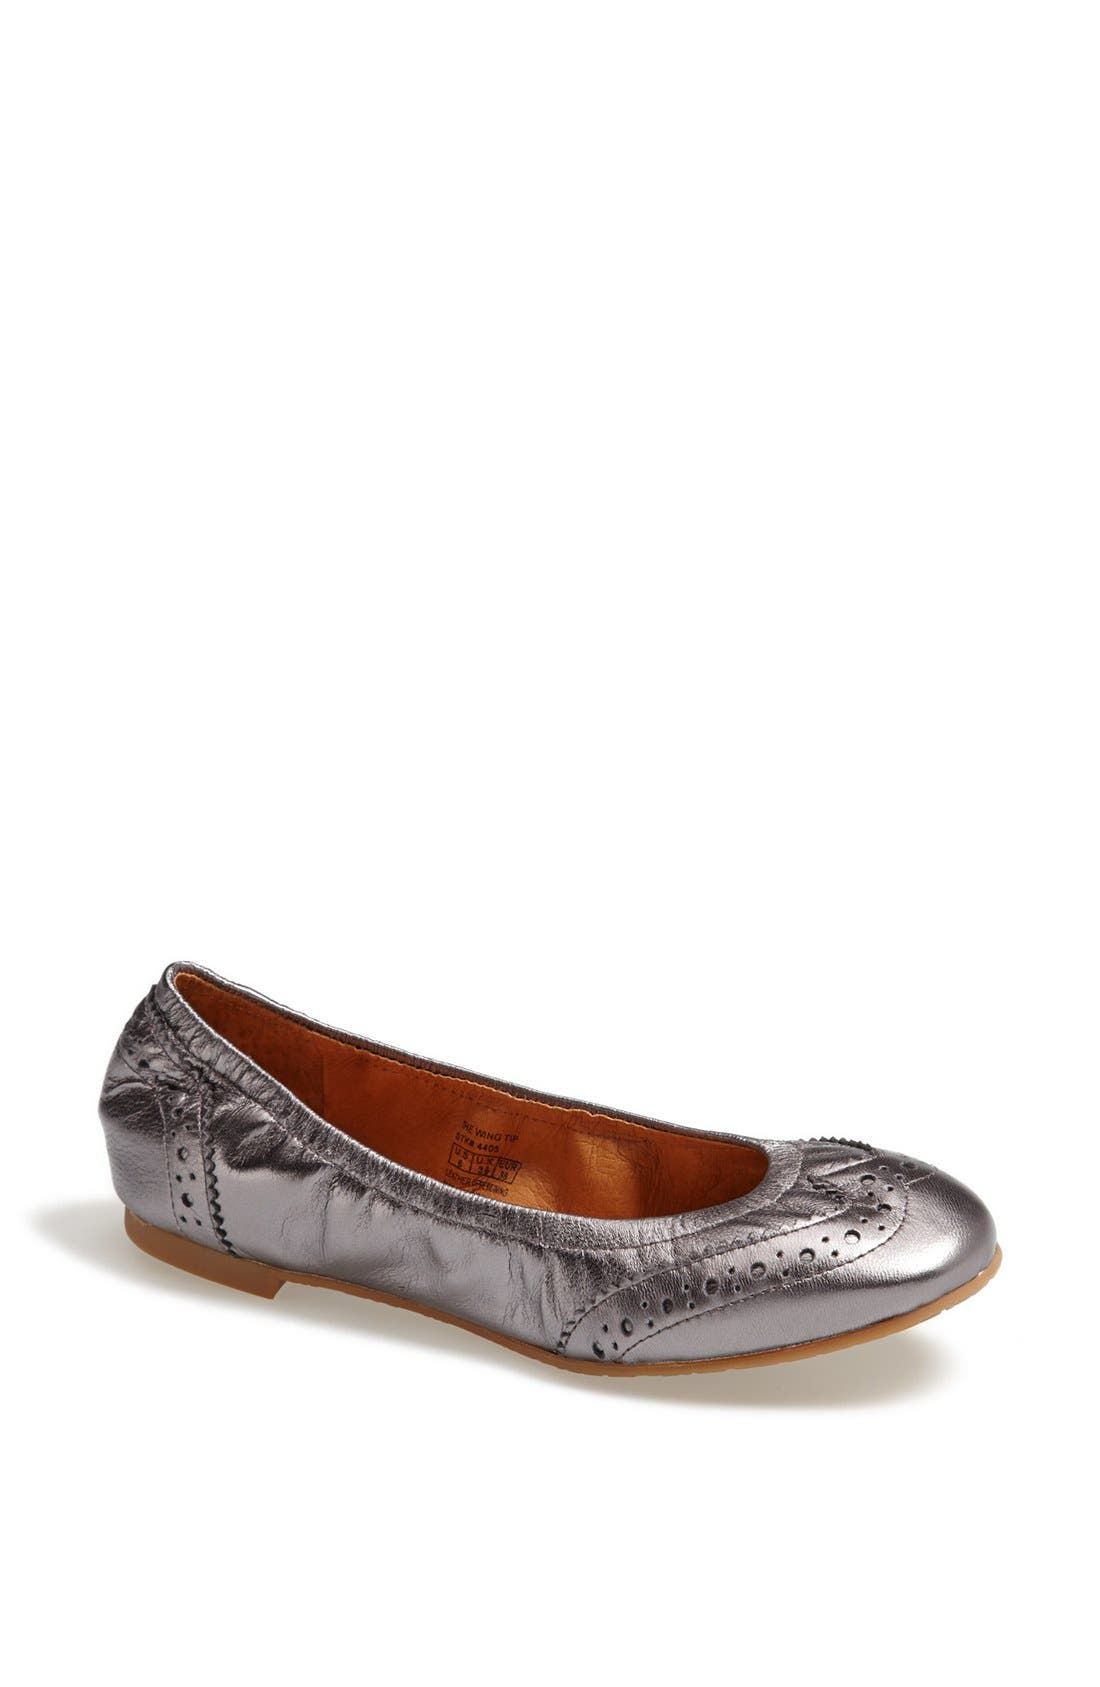 Main Image - Juil 'The Wing Tip' Copper Grounded Metallic Leather Flat